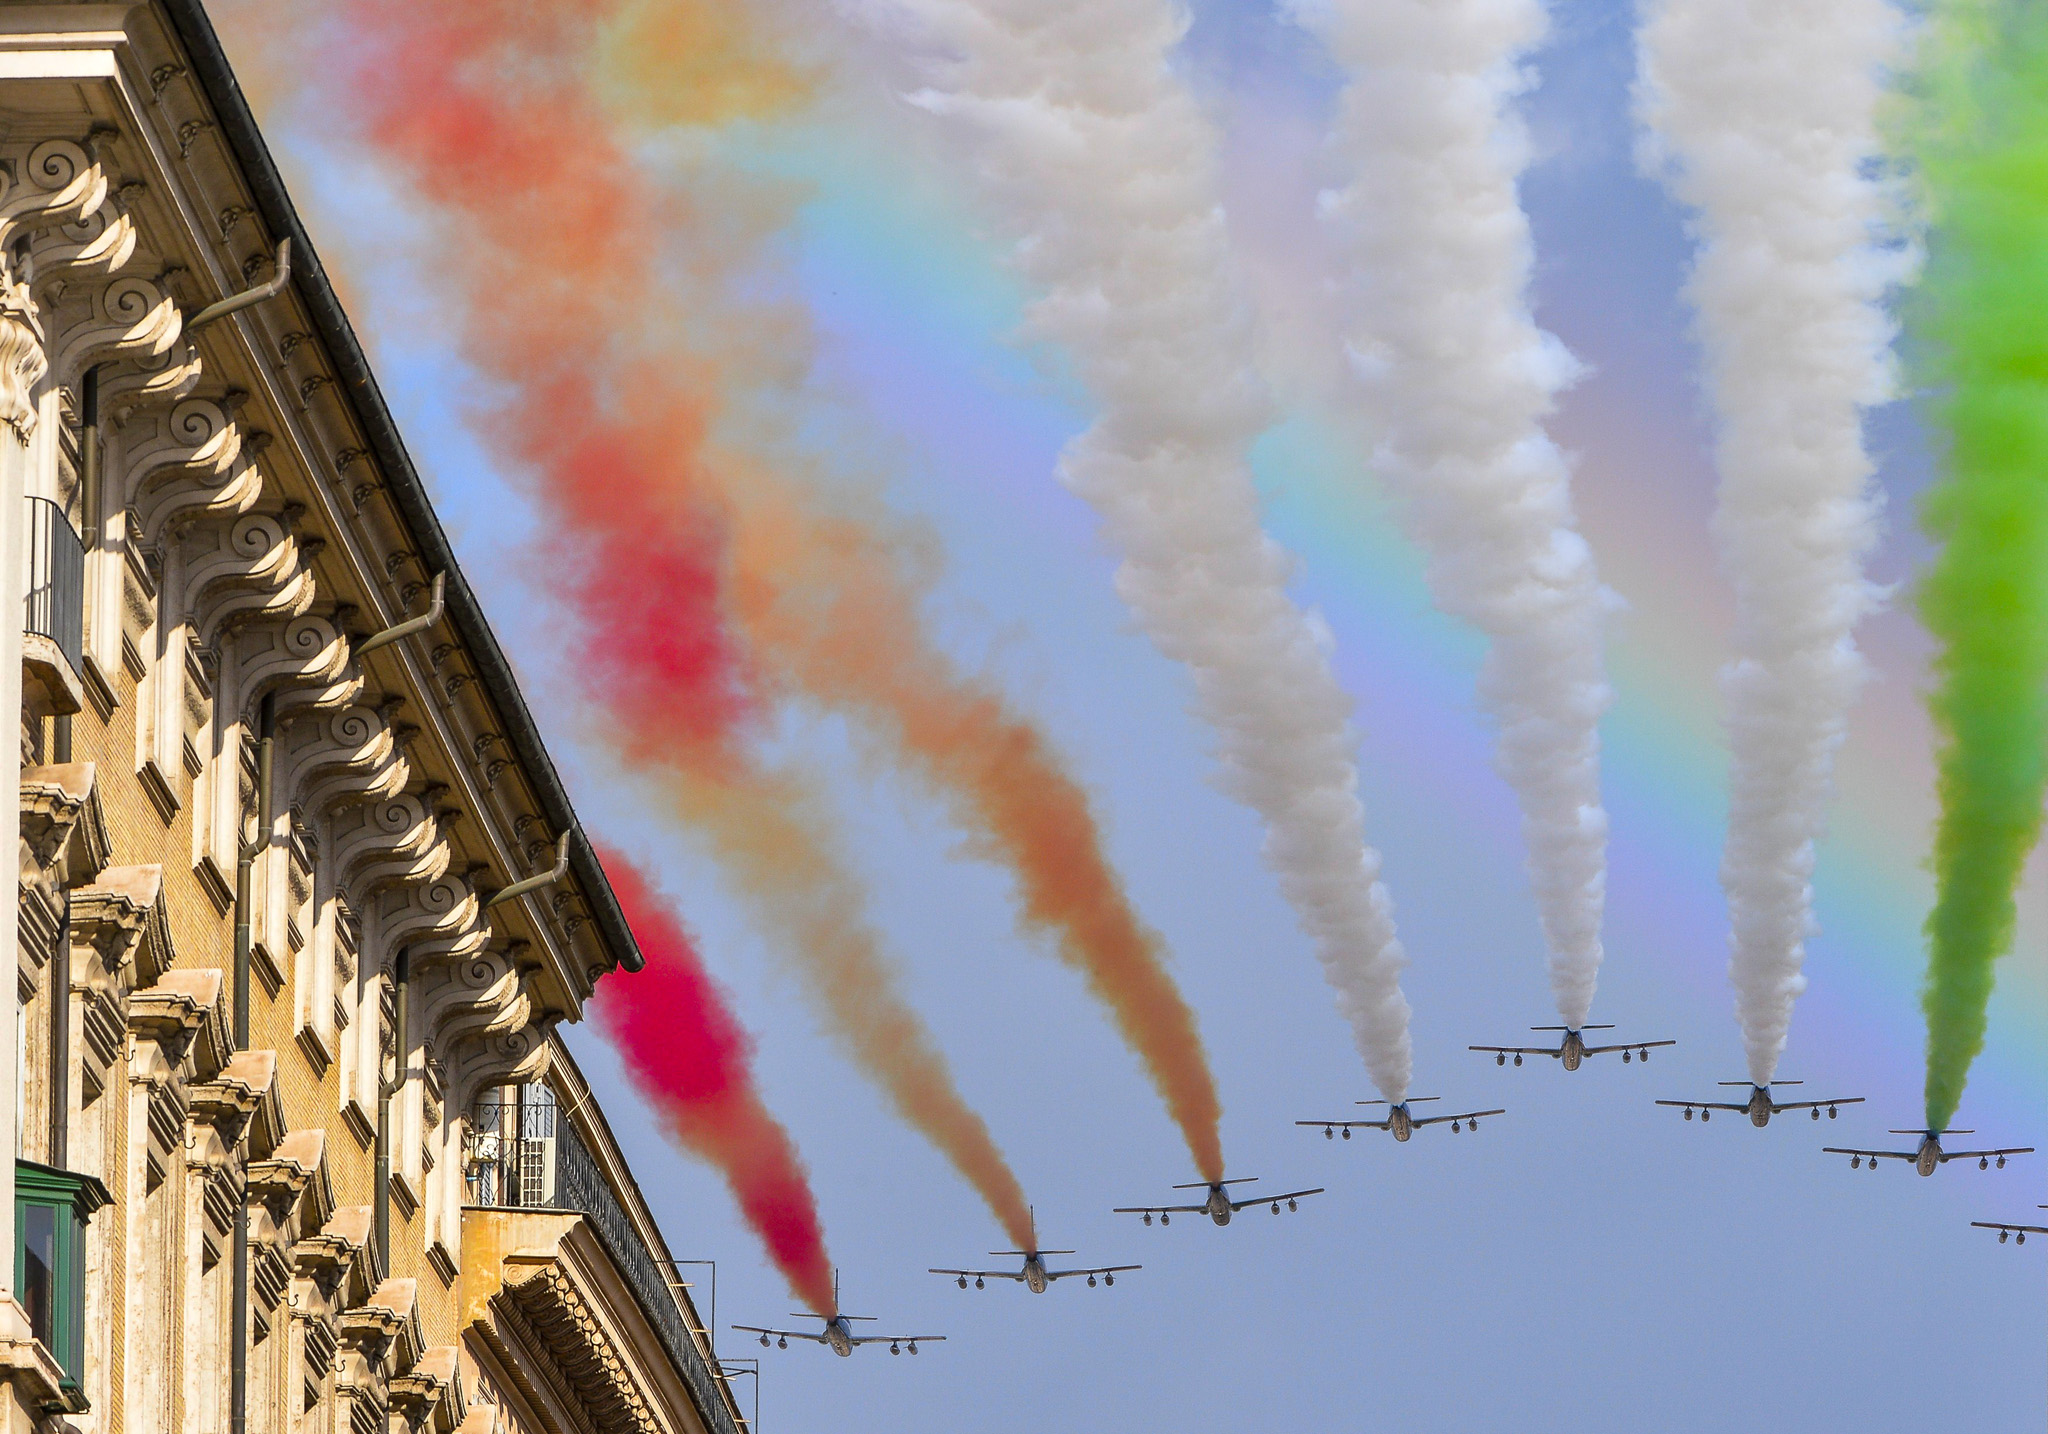 The Italian Air Force aerobatic unit Fre...The Italian Air Force aerobatic unit Frecce Tricolori (Tricolor Arrows) spreads smoke with the colors of the Italian flag over the Piazza Venezia as Italy celebrates today the National Unity Day and the Armed Forces Day which marks the end of World War I for Italy, on November 4, 2014 in Rome.  AFP PHOTO / ANDREAS SOLAROANDREAS SOLARO/AFP/Getty Images